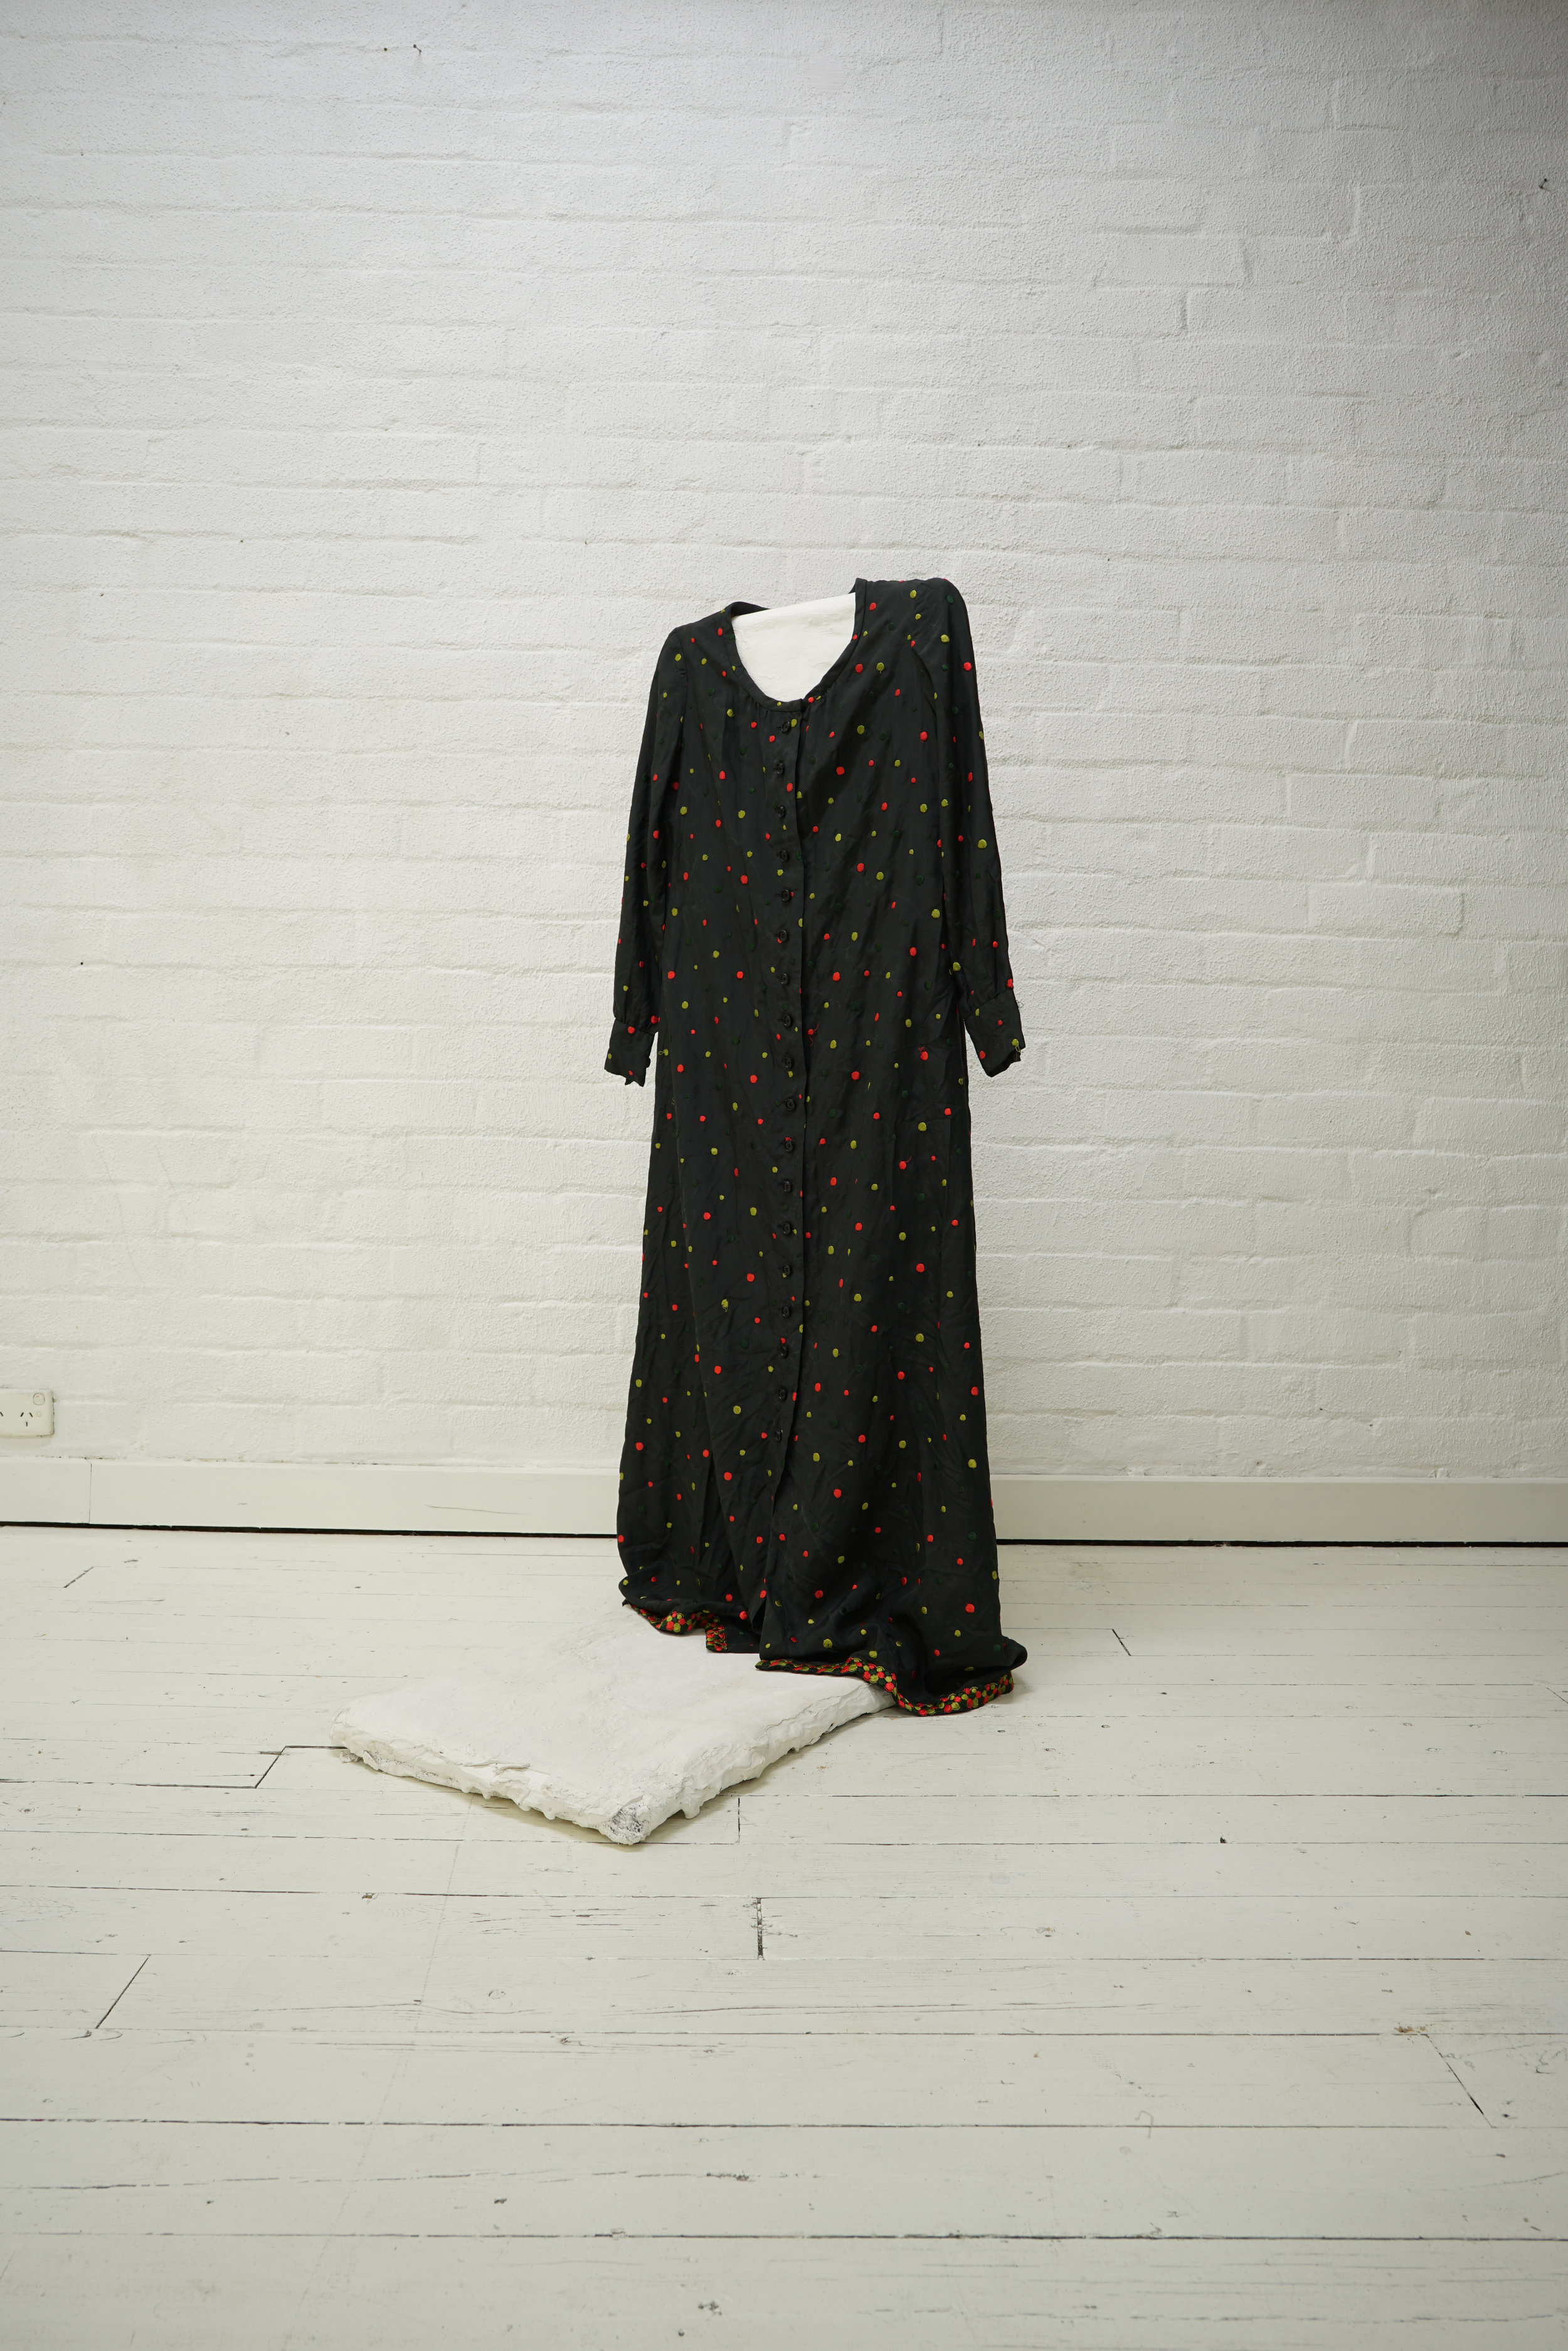 givenchy silk embroiled polka dot dress from a flat finds